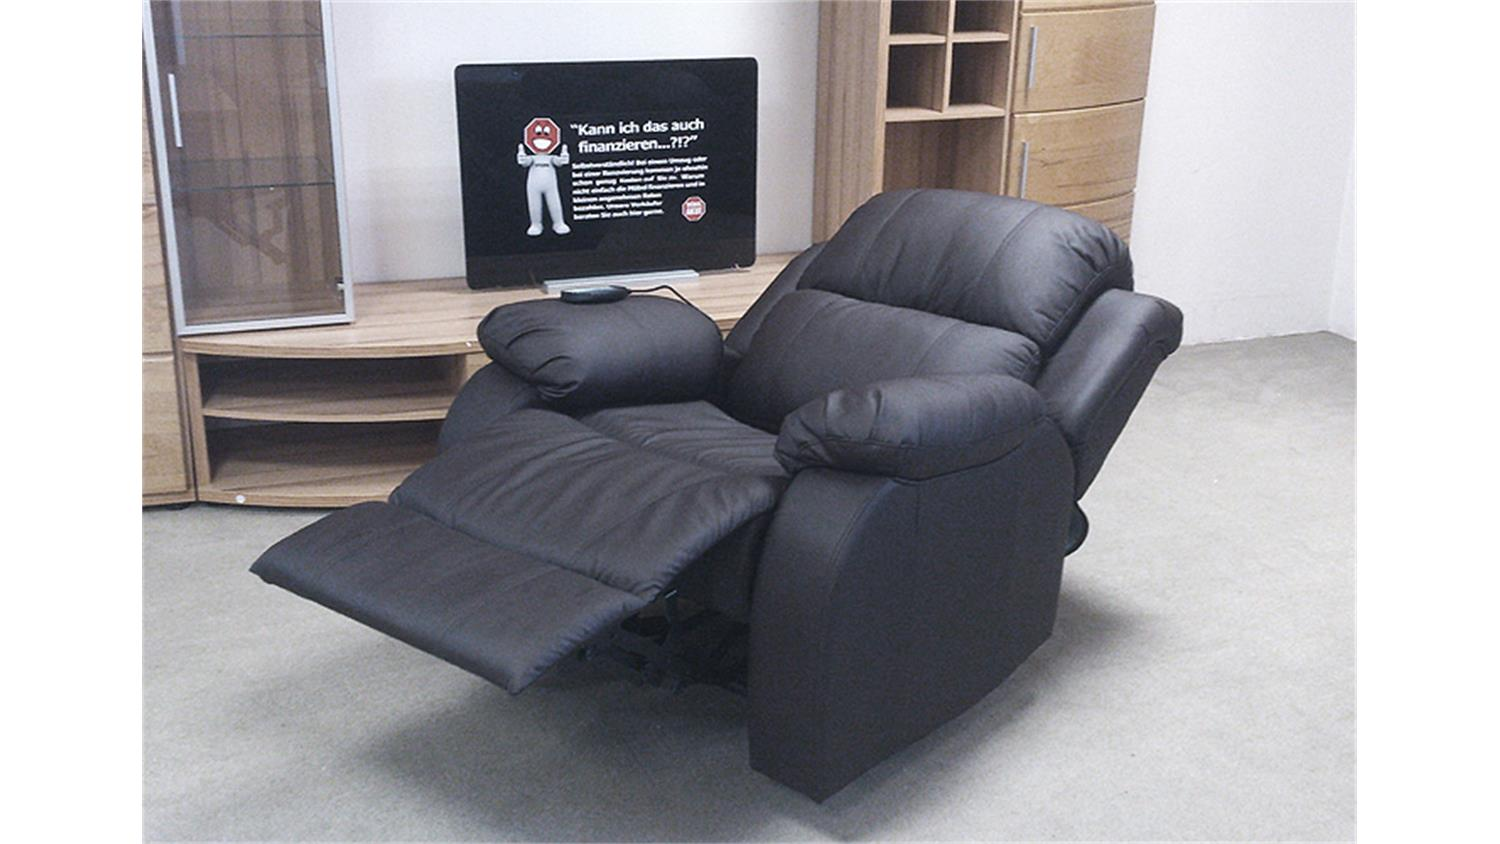 tv sessel lakos schwarz inkl vibrationsmassage heizung. Black Bedroom Furniture Sets. Home Design Ideas